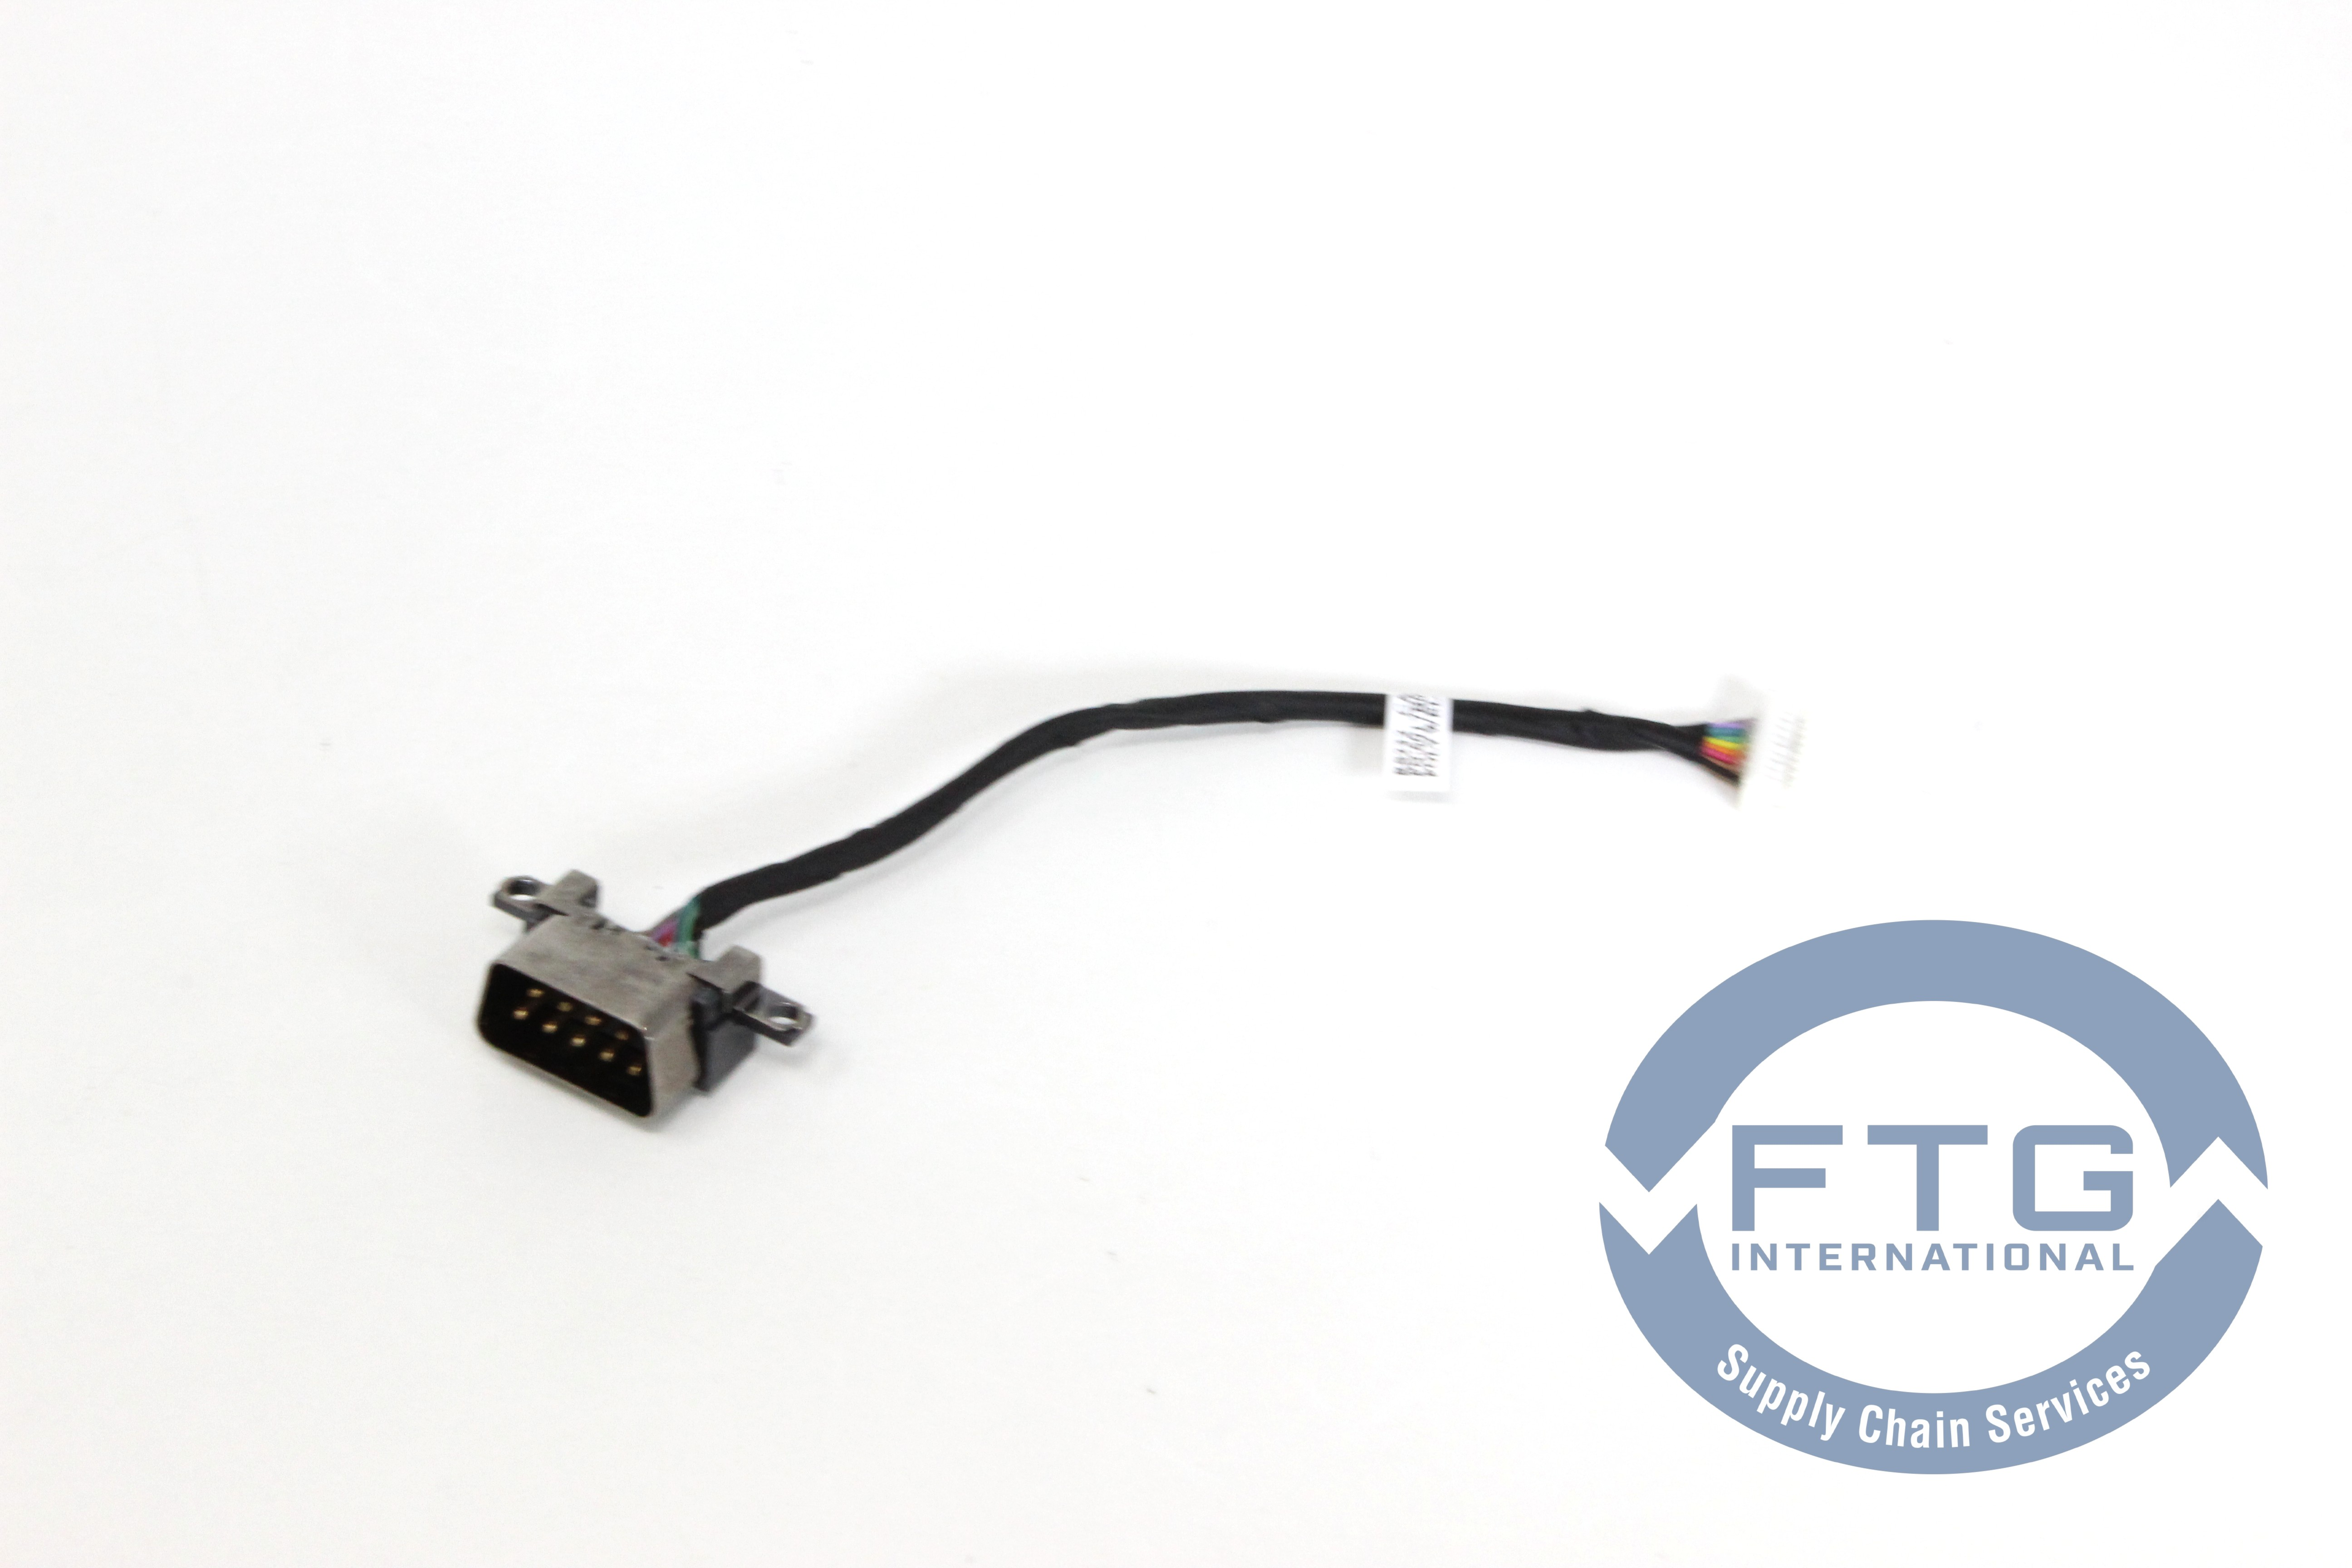 745210-001 Cable RJ232 CYCLONE15 1.X Wiring & Connecting Cable ...